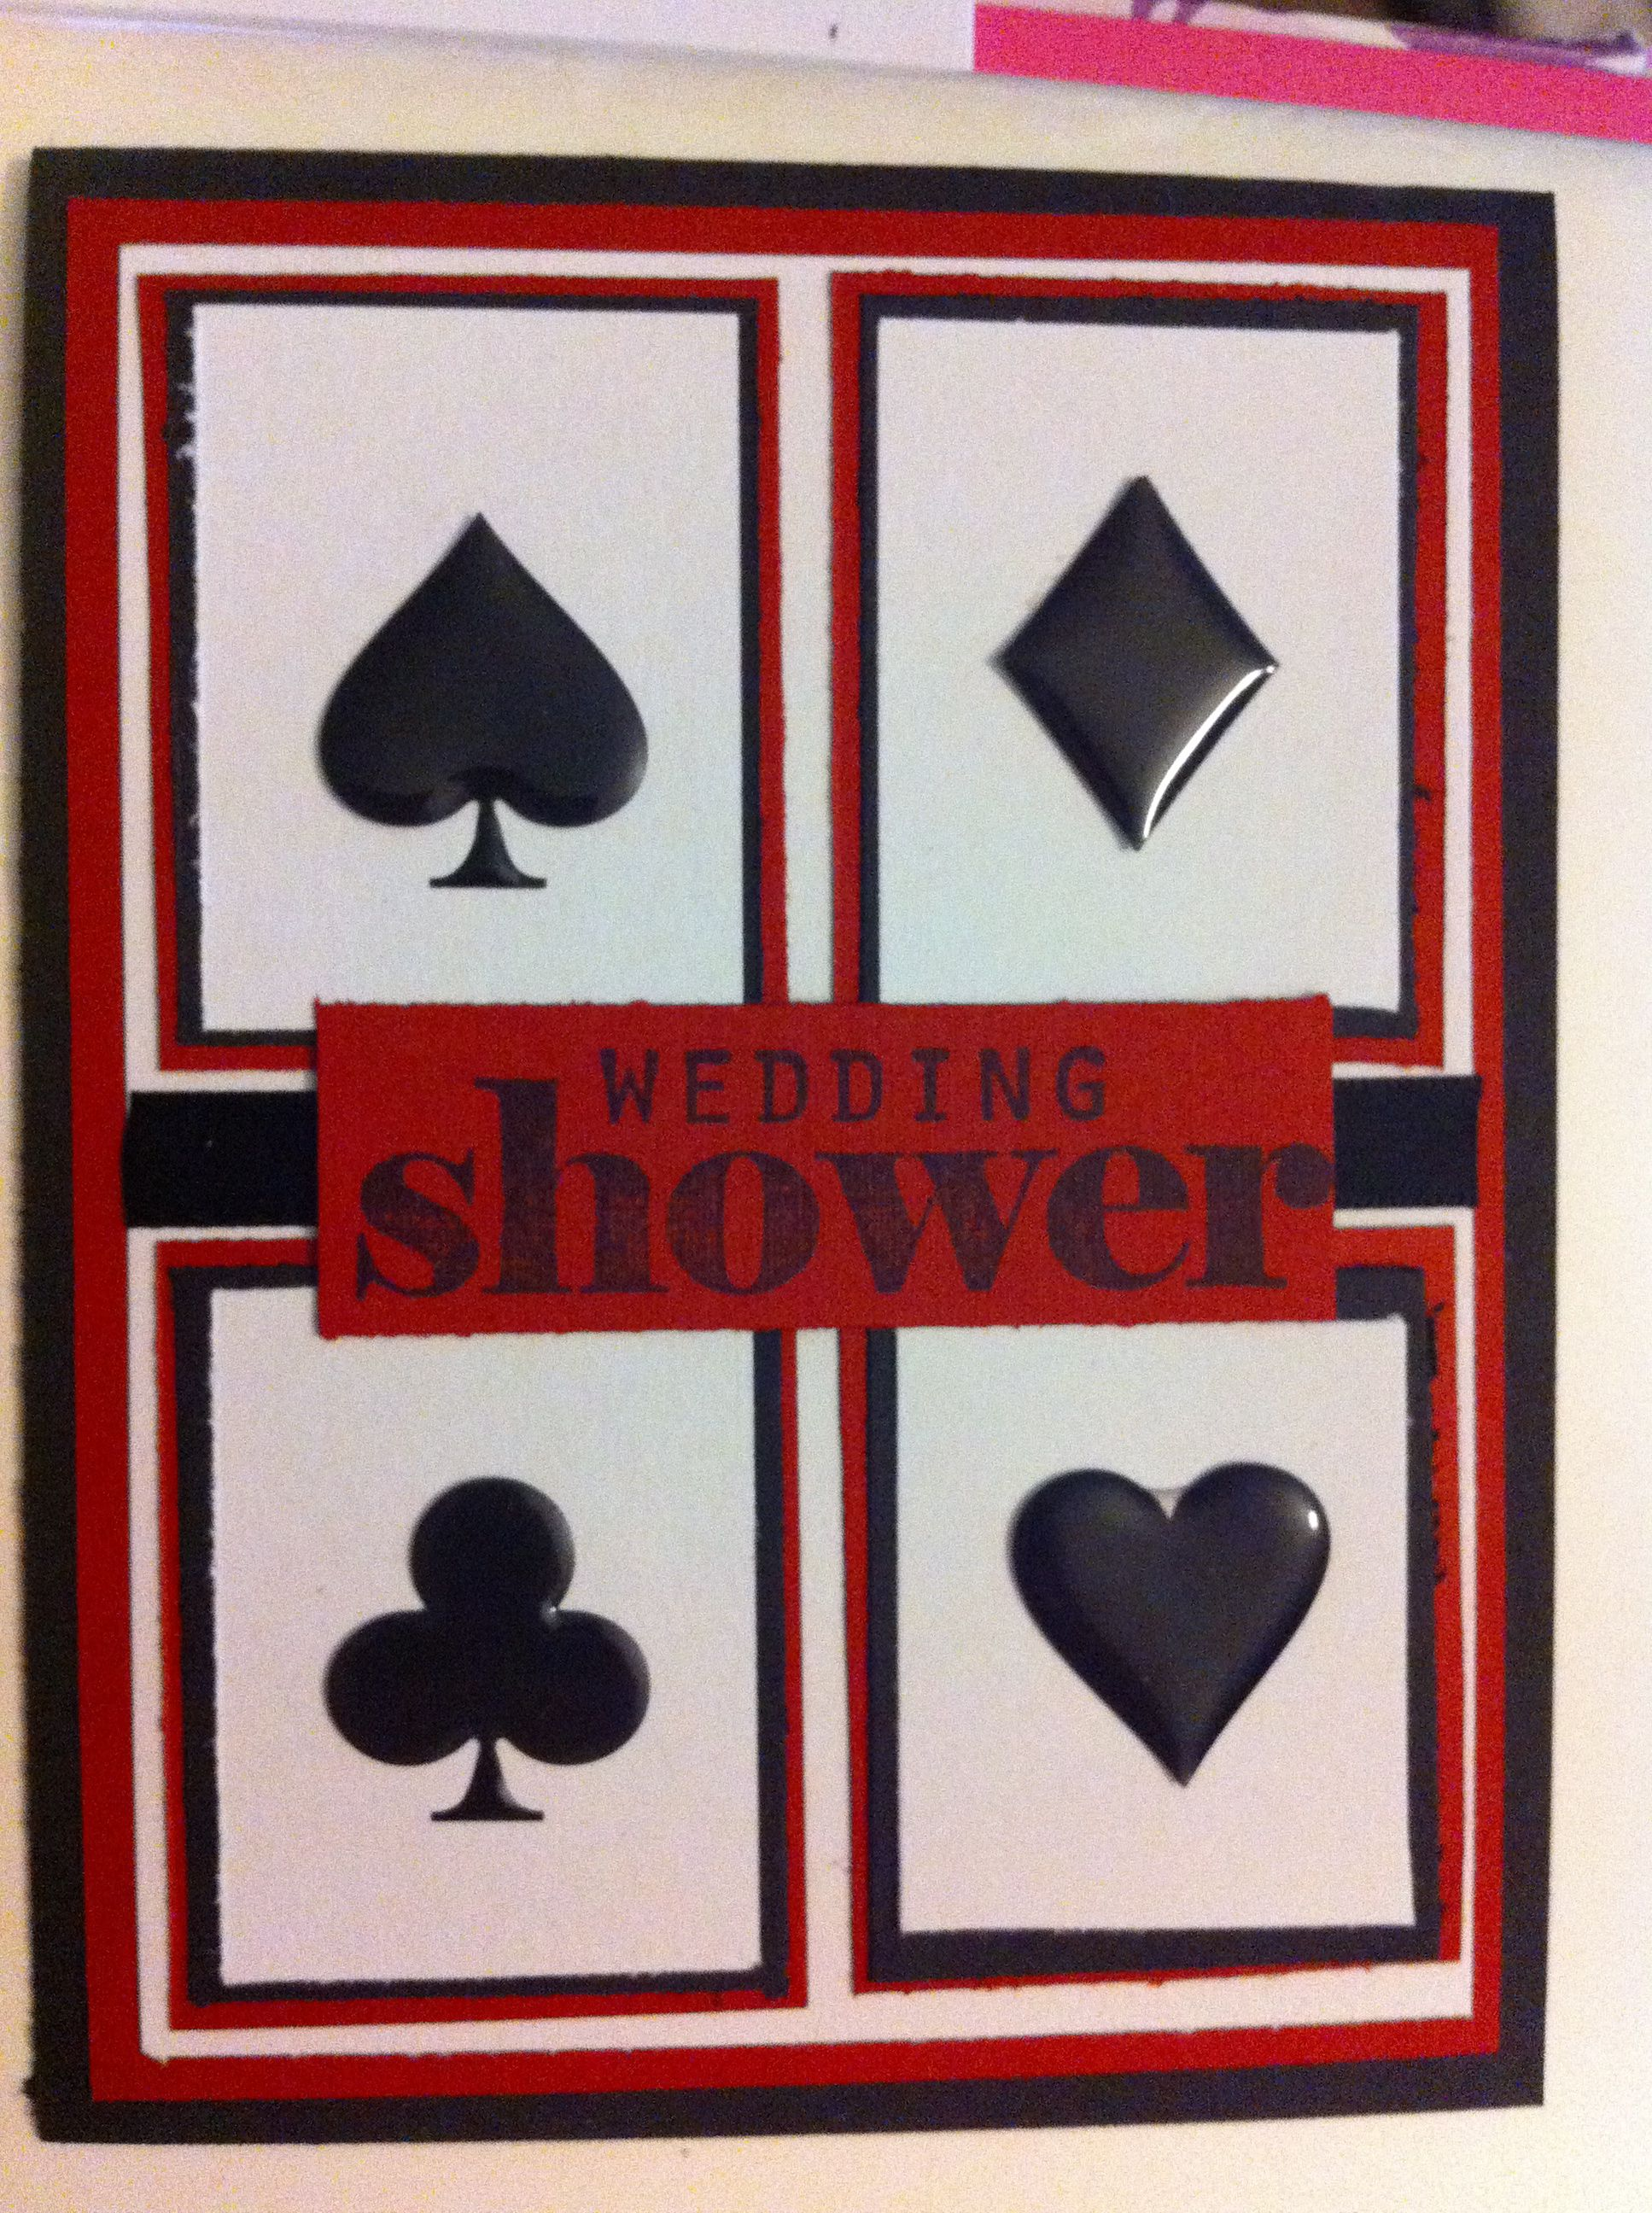 bridal shower invitation for a girl friend vegas themed engagement parties throw a party